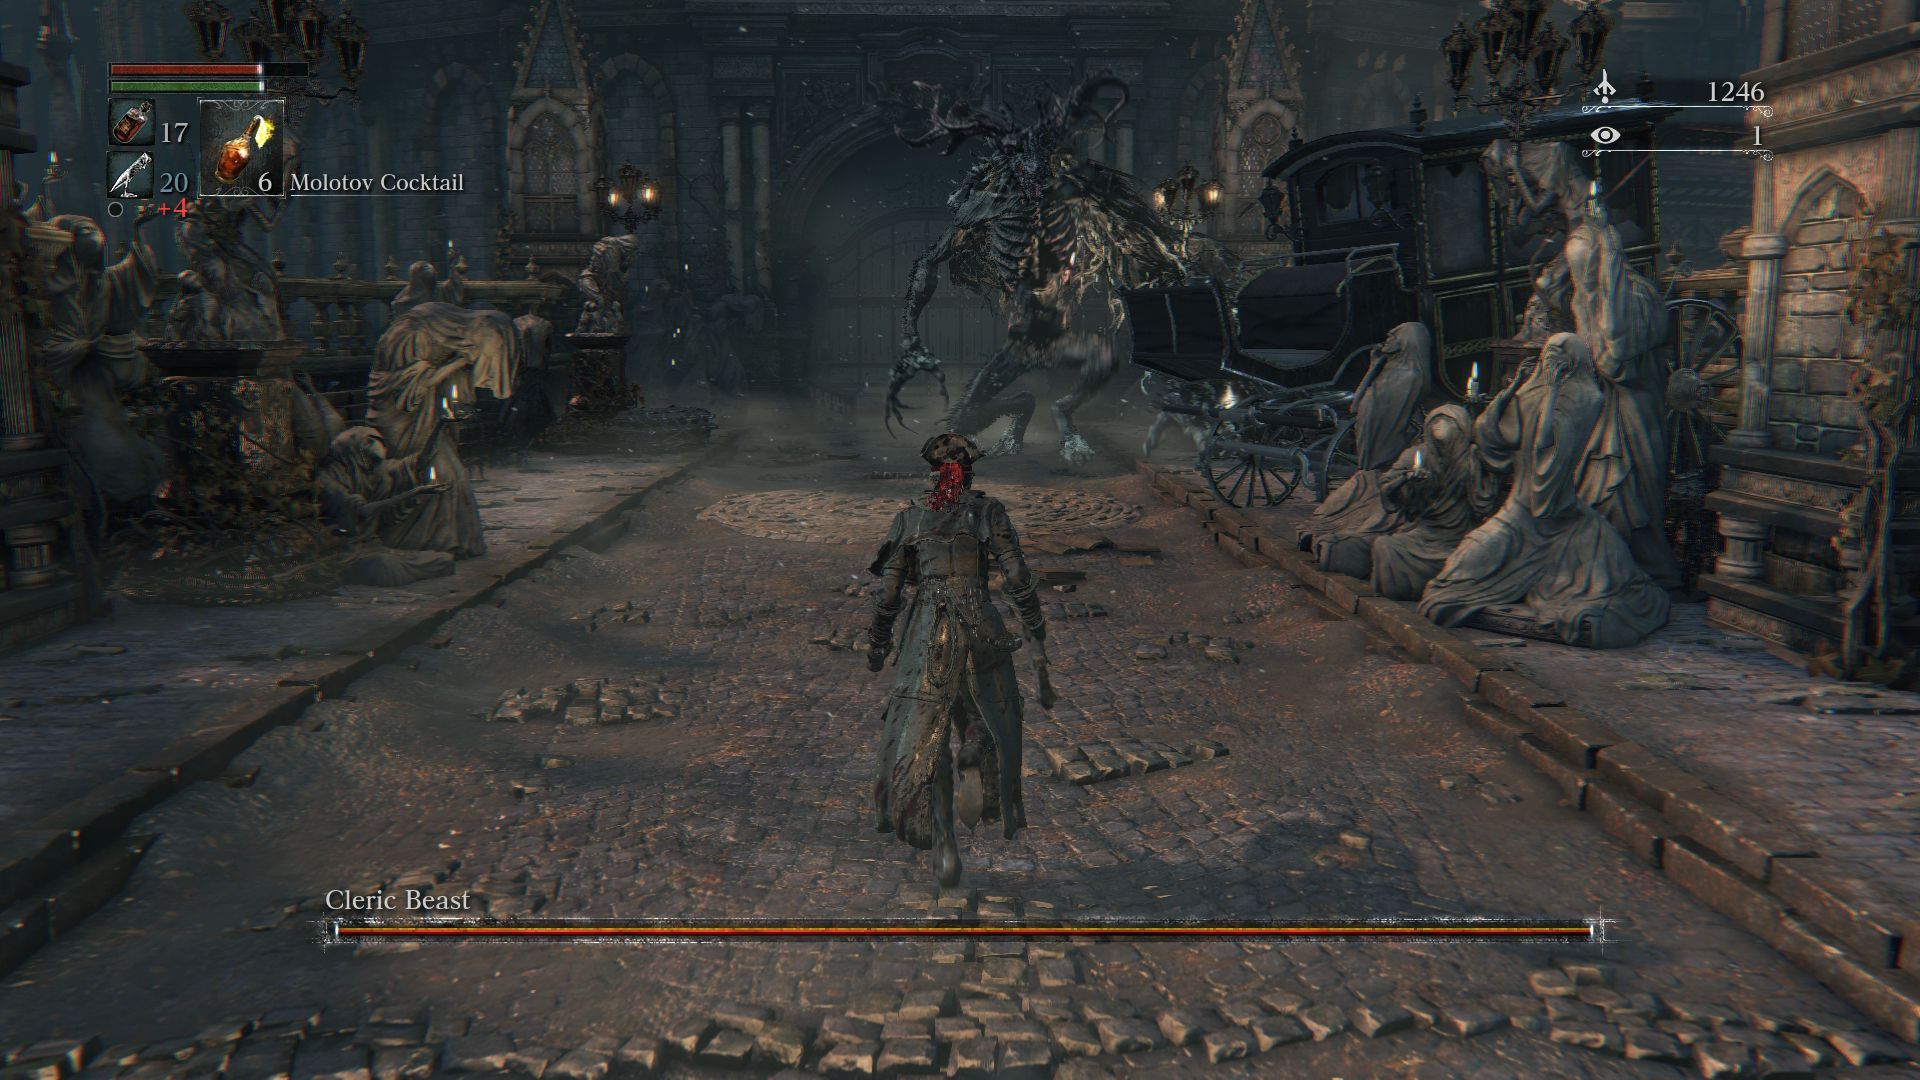 Breath Of The Wild Bosses >> How To Get To The First Boss Cleric Beast In Bloodborne